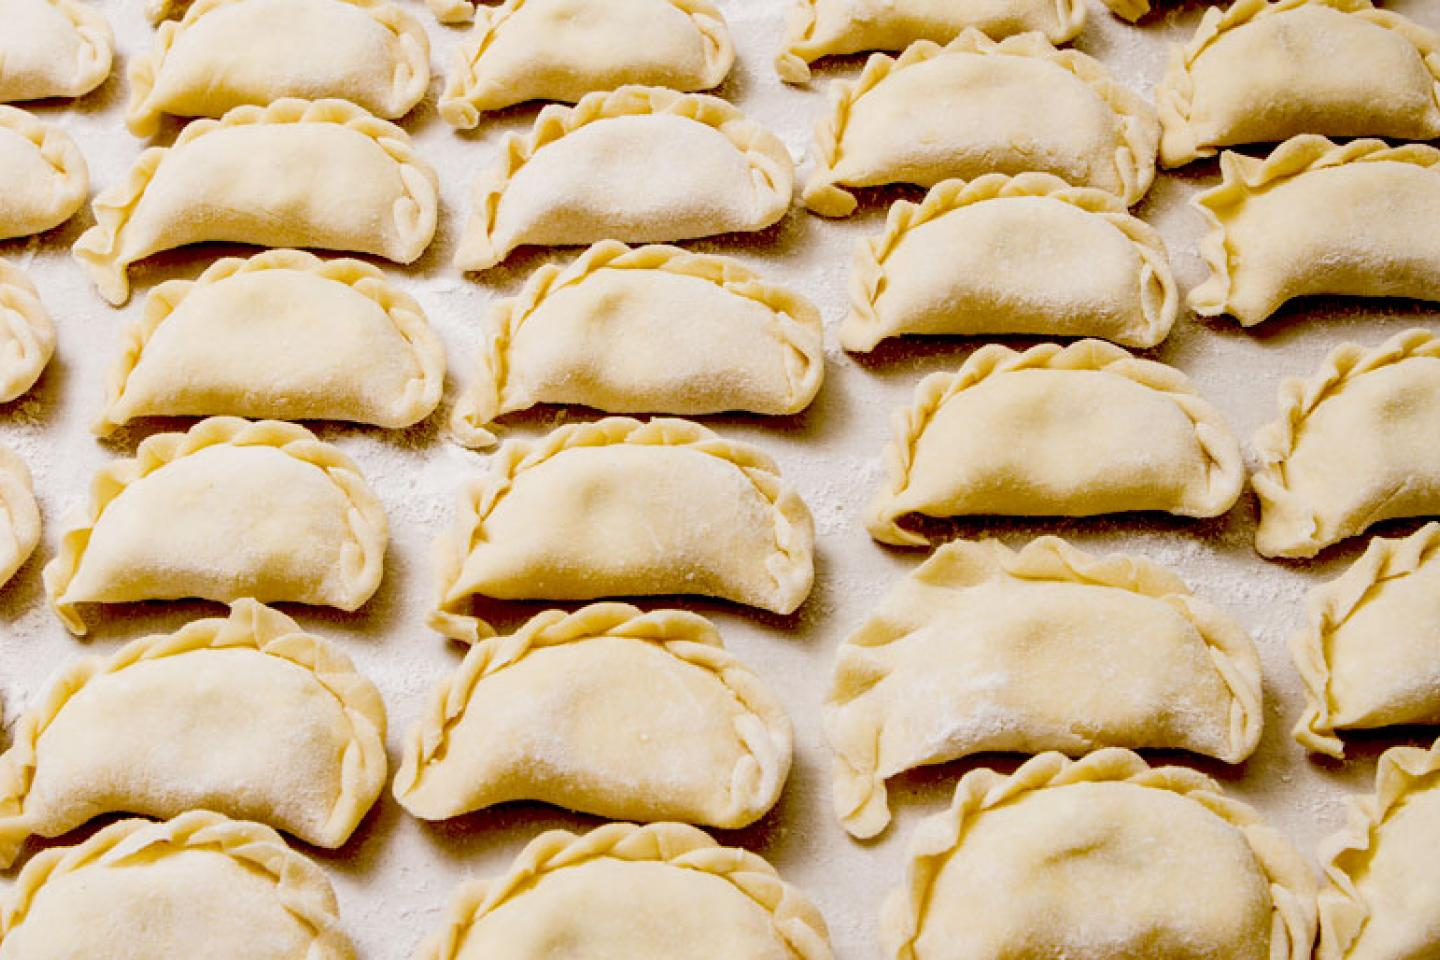 Learn About the Disputed History of Perogies